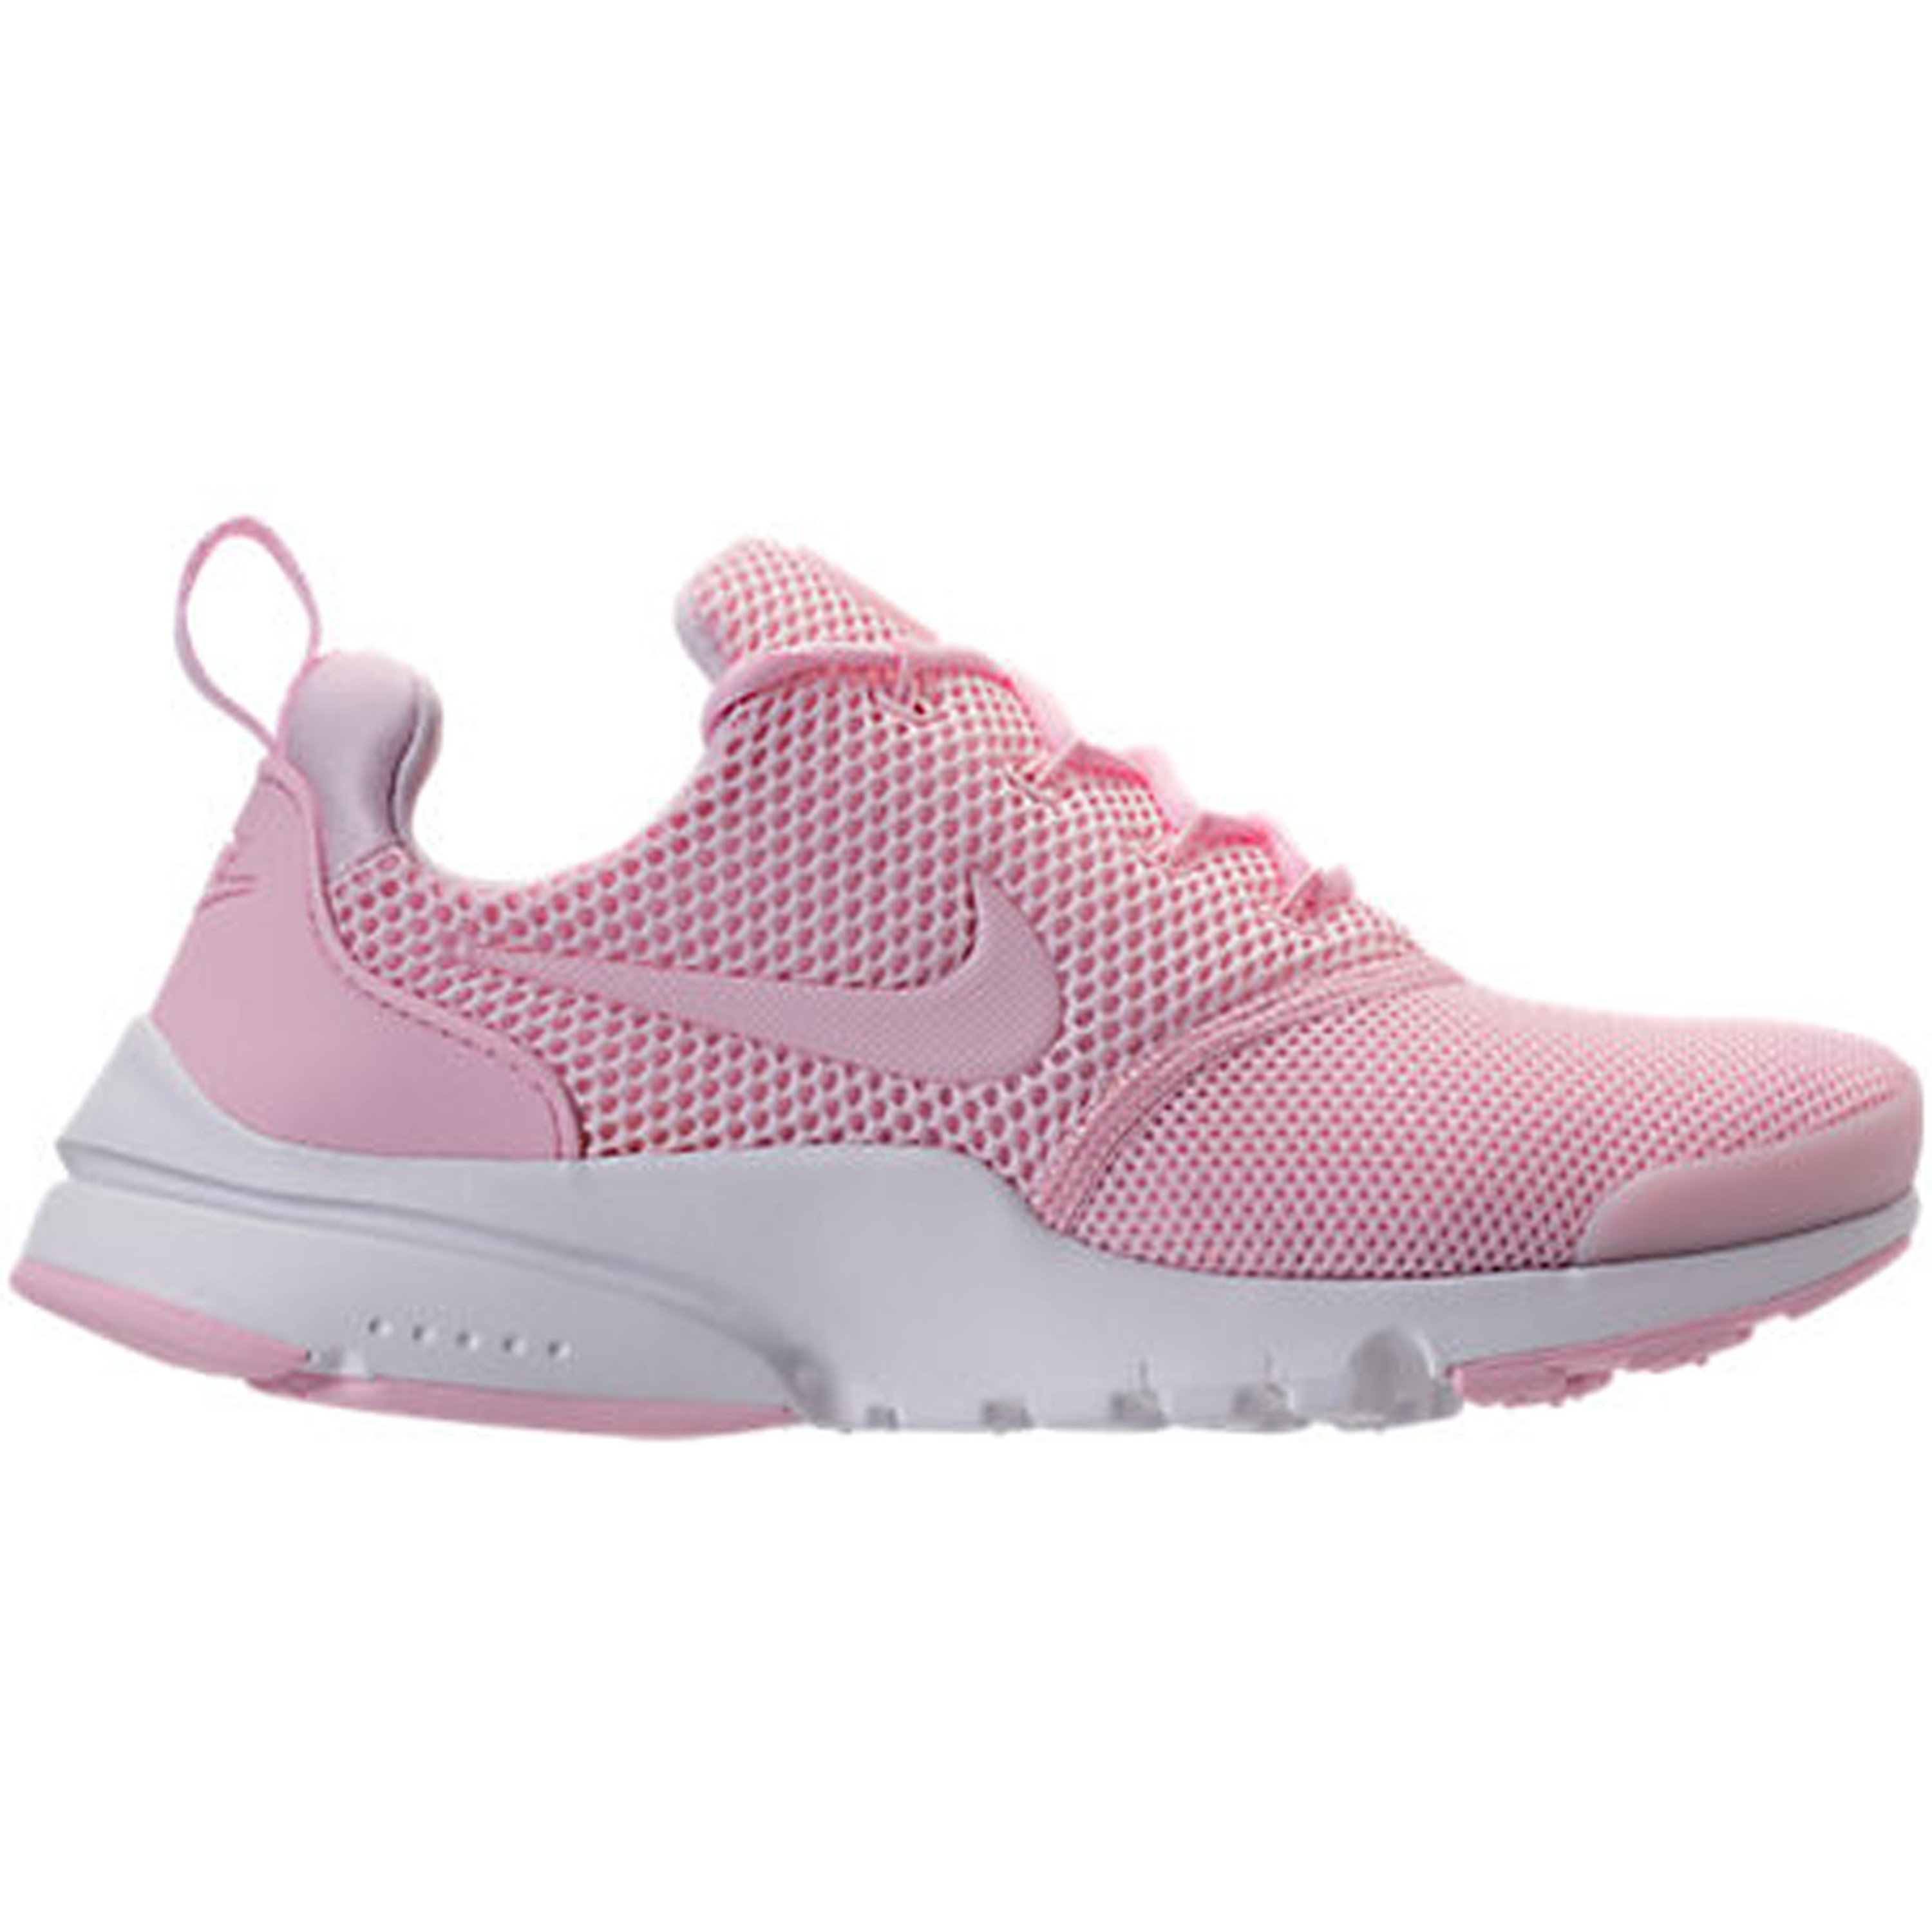 Nike Air Presto Fly Prism Pink (GS) (913967-600)